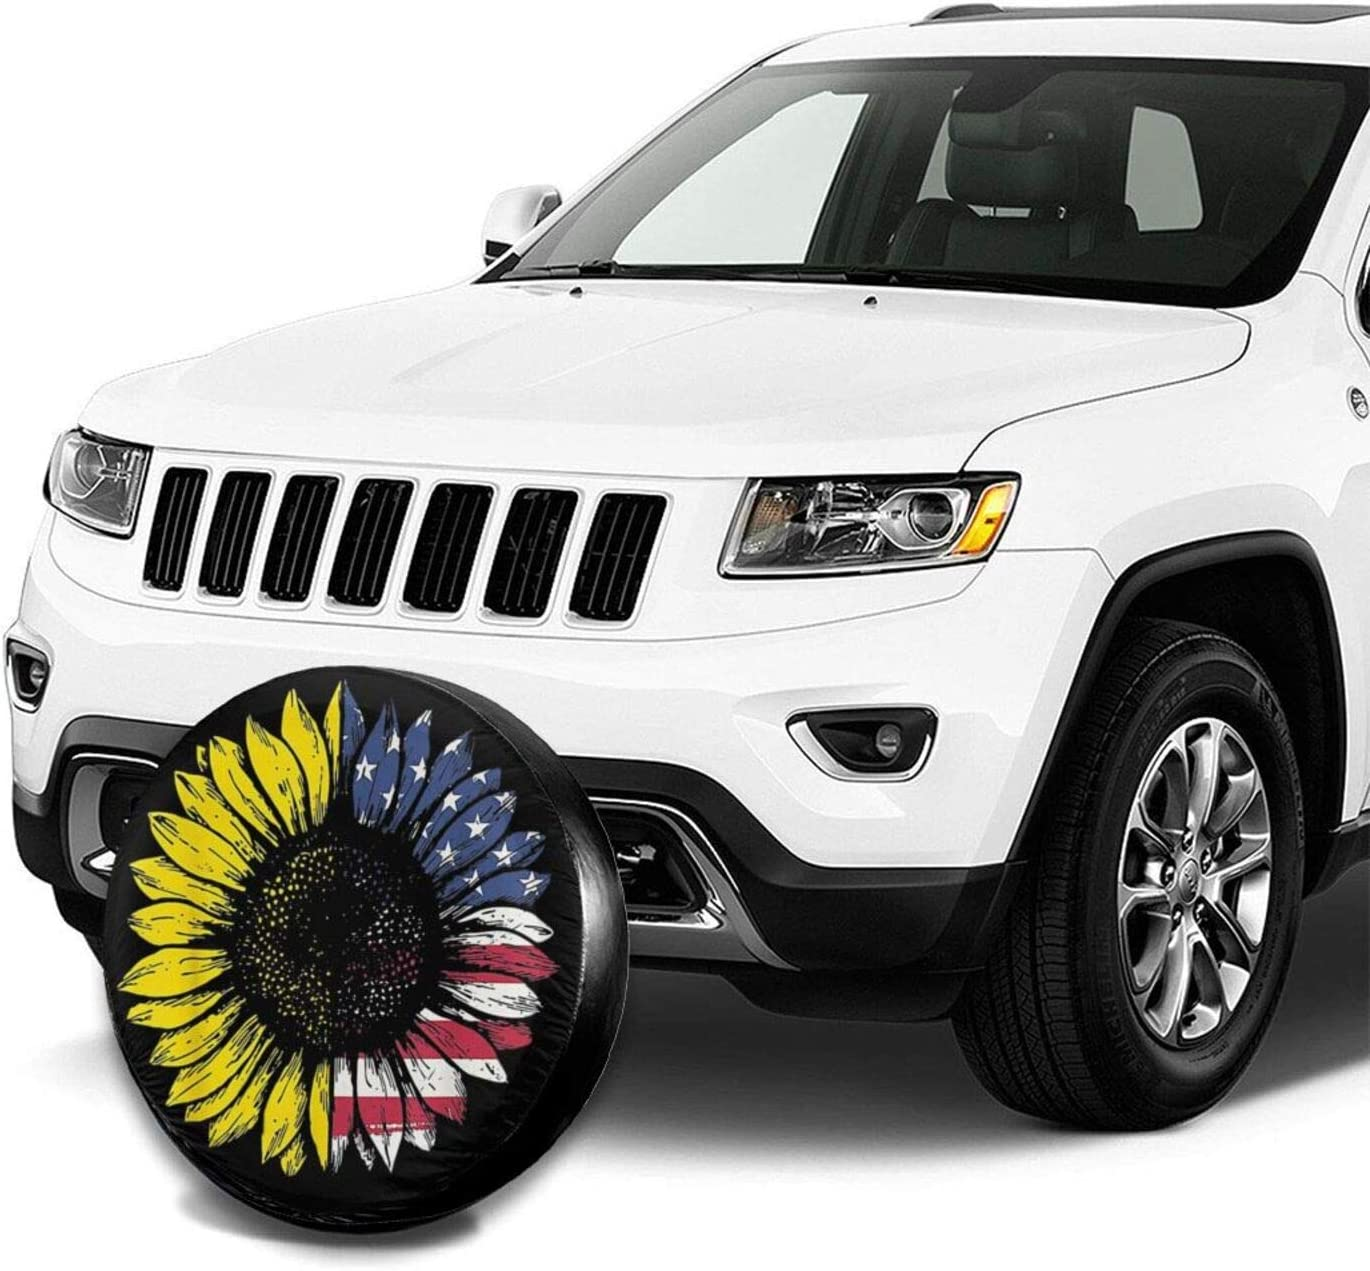 QNOQME Sunflower American Flag Tire Cover Uv Sun Waterproof Dust-Proof Spare Wheel Protection Fit for Jeep//Trailer//Rv//SUV and Many Vehicle